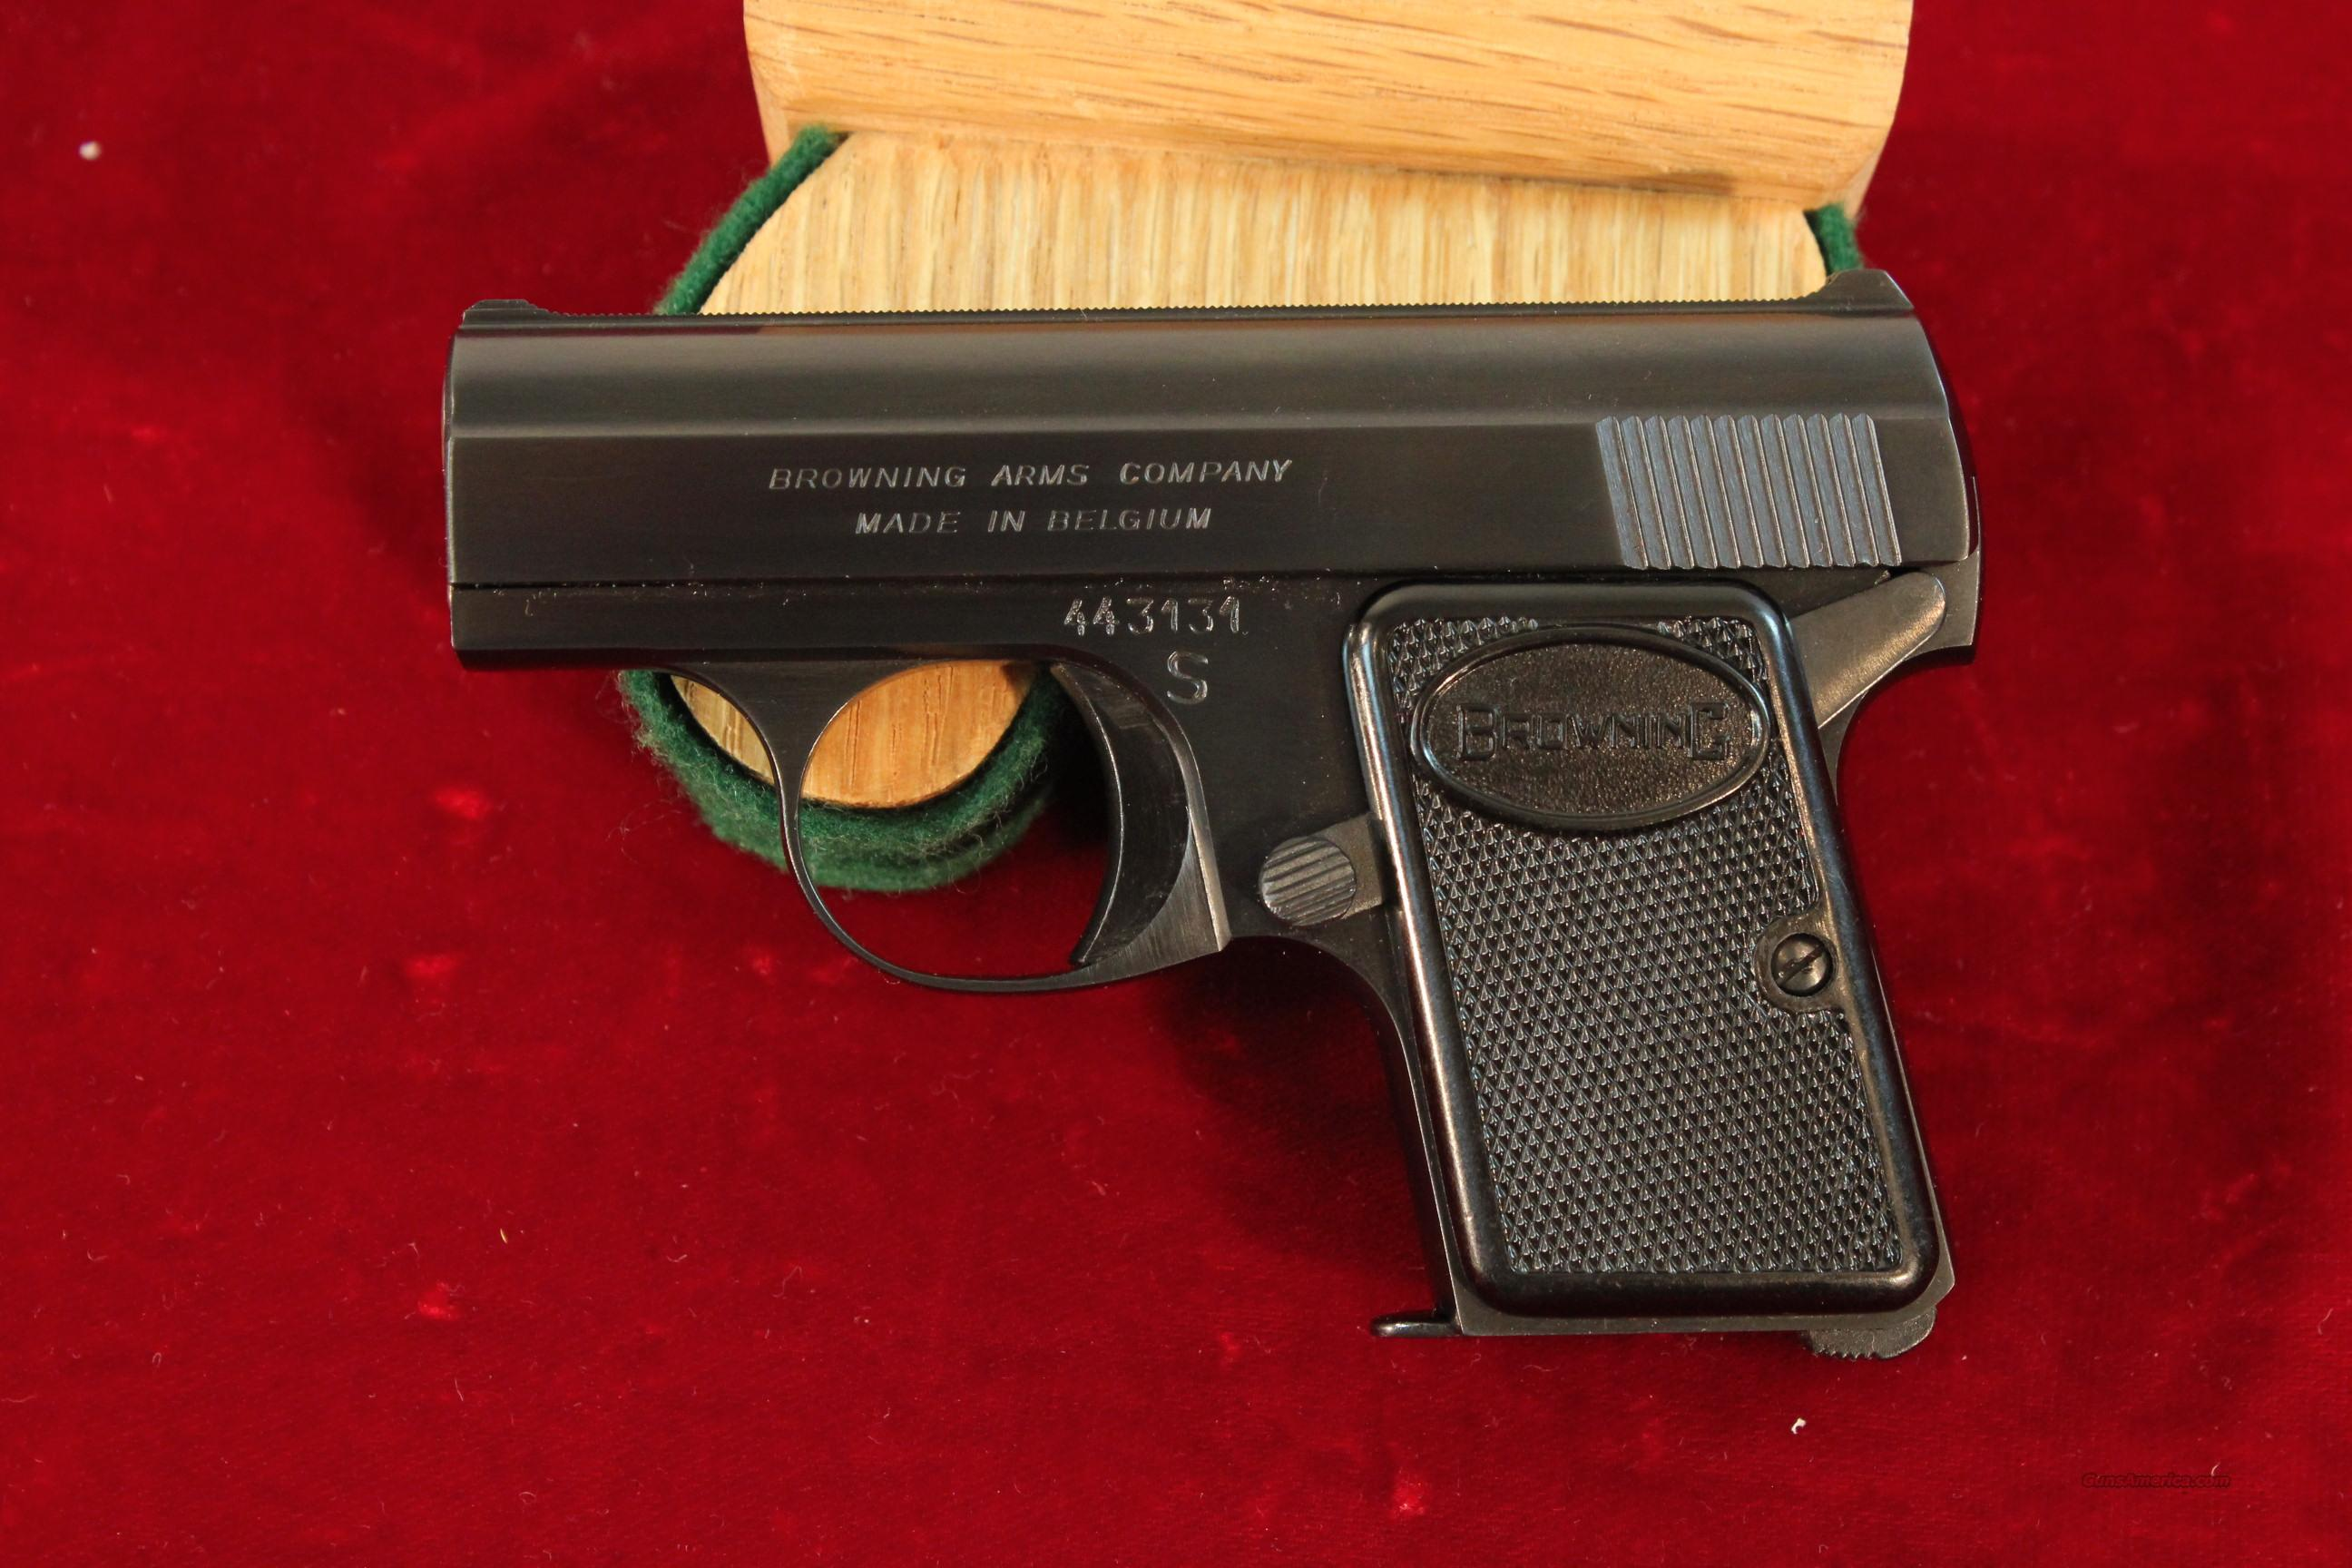 Browning Baby .25acp blue 1967 Like New  Guns > Pistols > Browning Pistols > Baby Browning